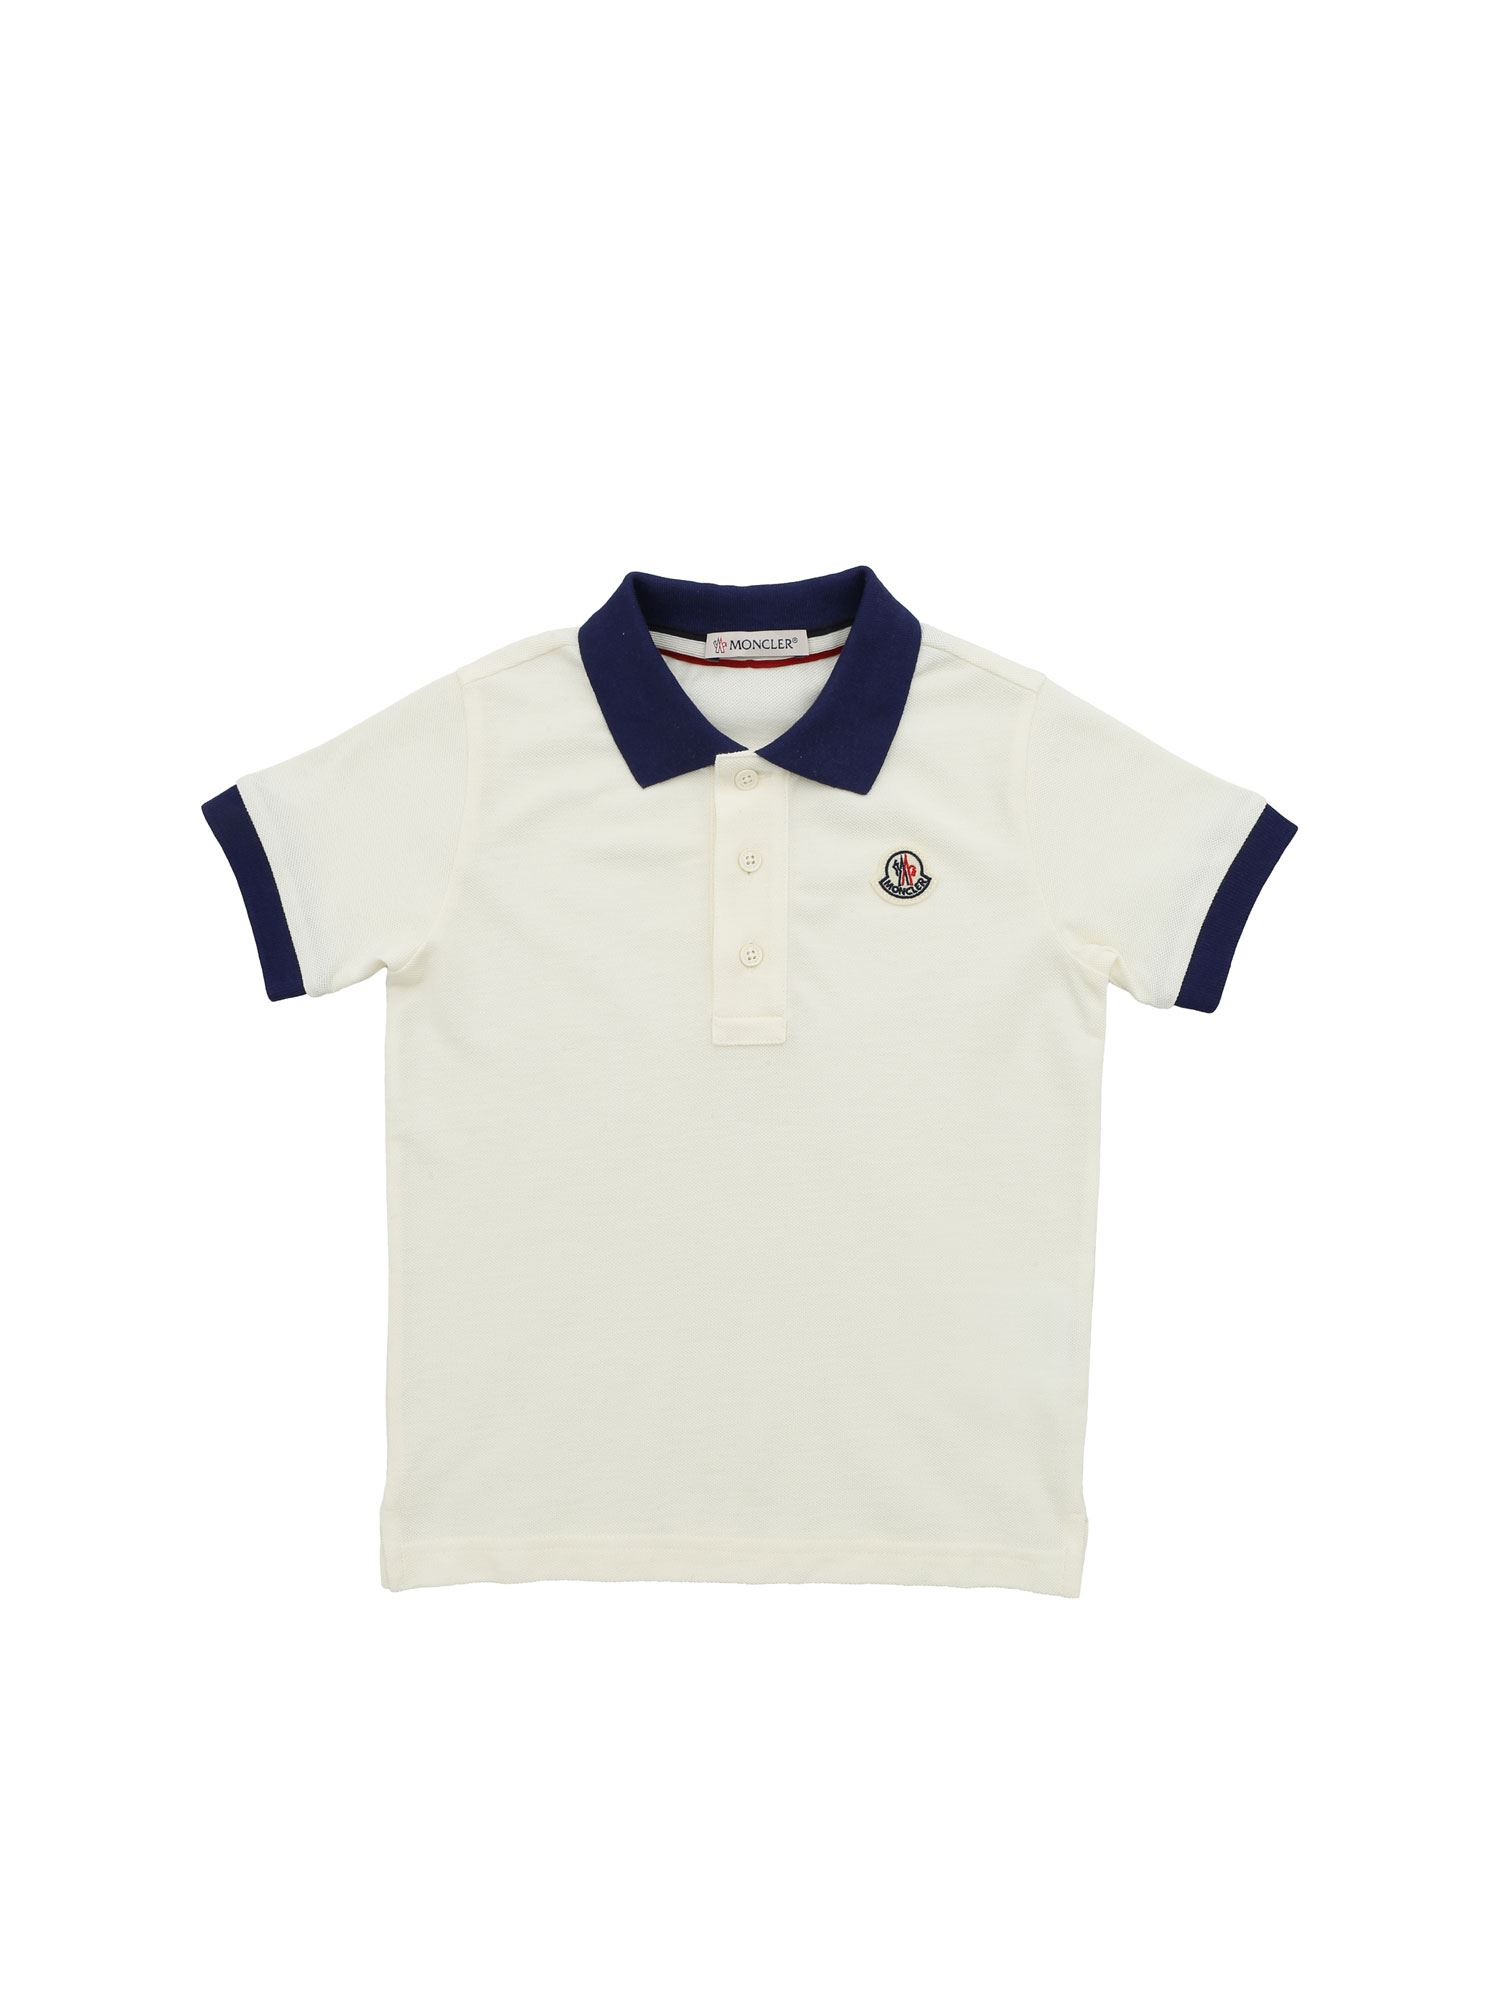 Moncler Jr LOGO PATCH POLO SHIRT IN IVORY COLOR